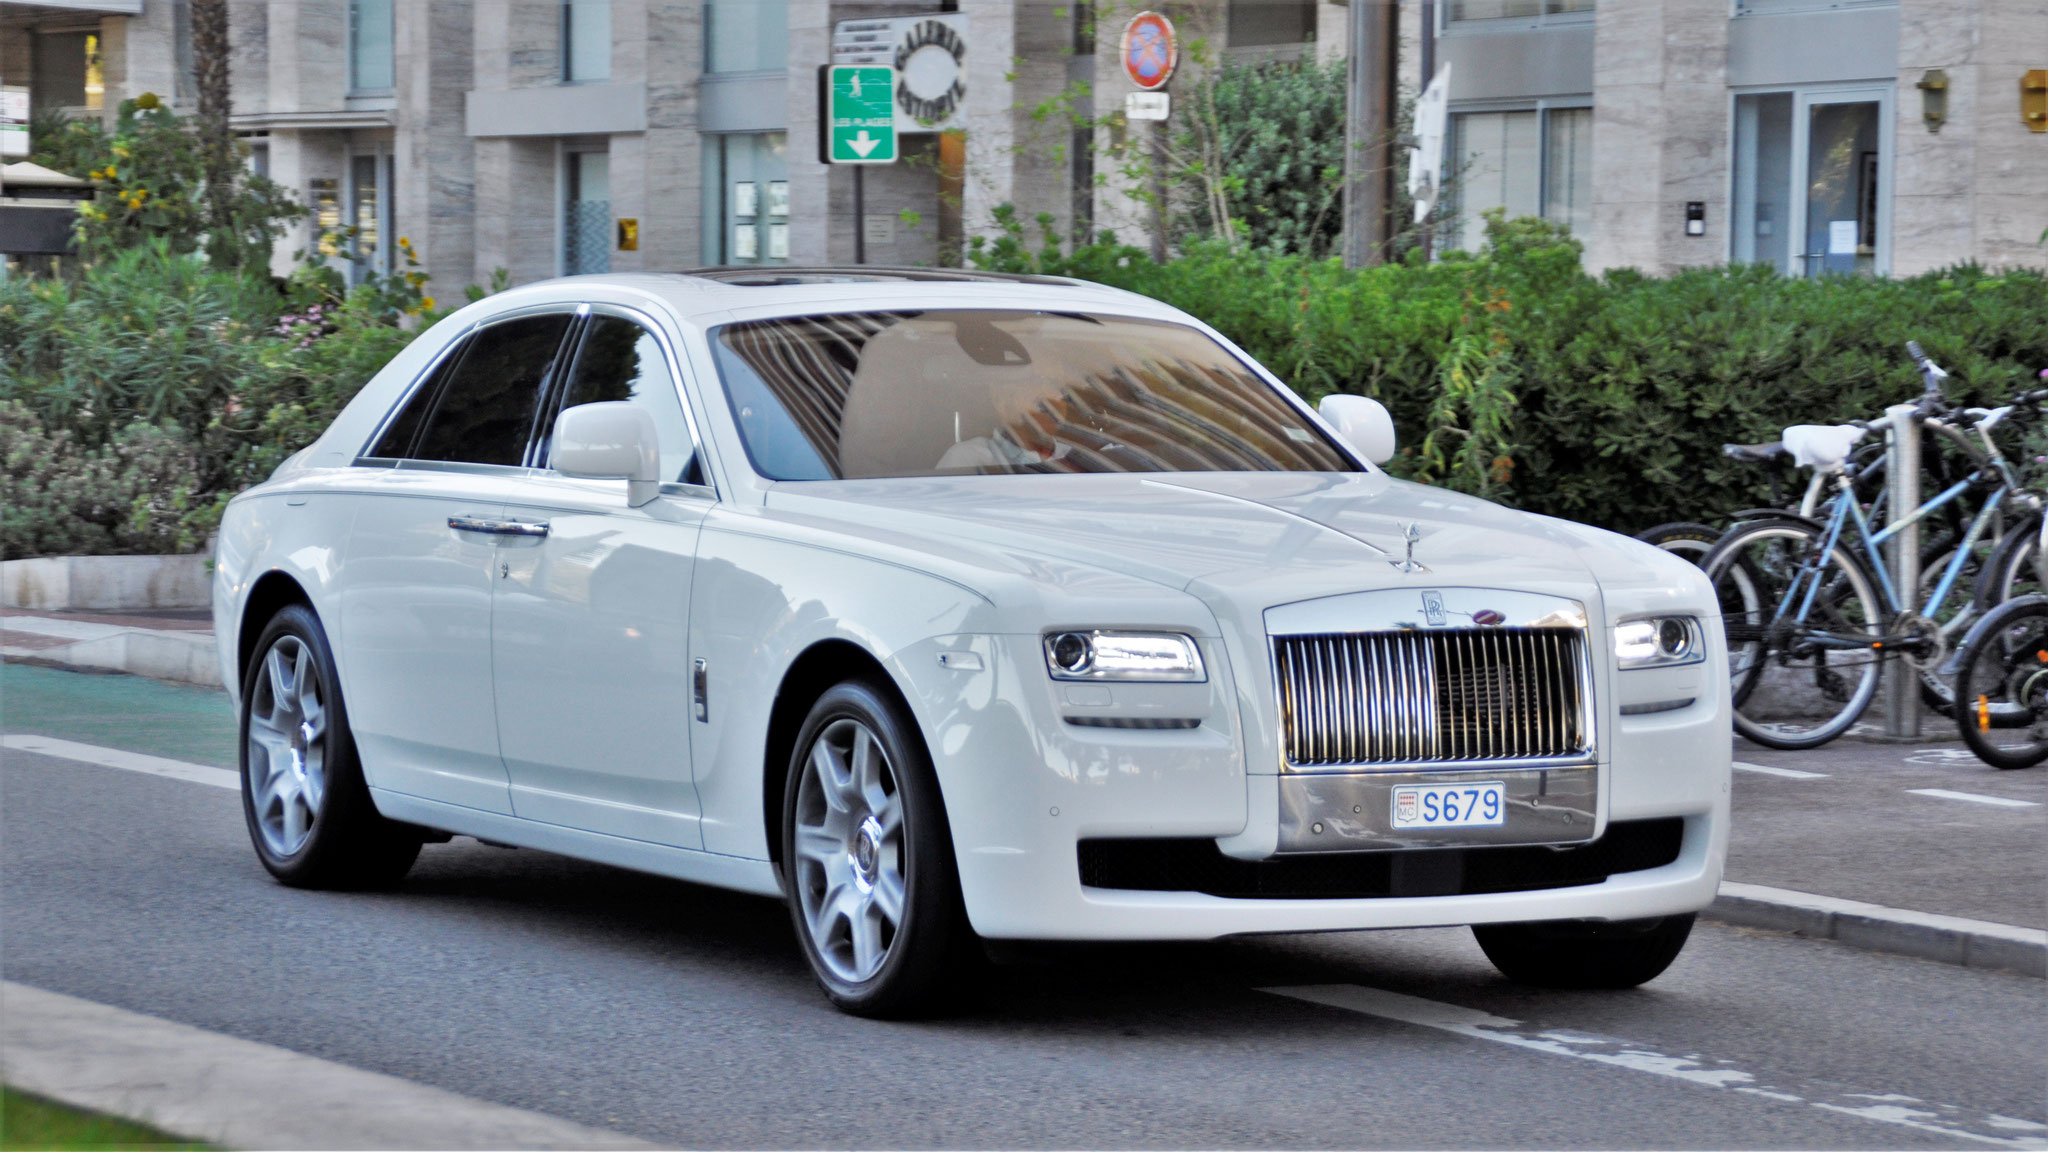 Rolls Royce Ghost - S679 (MC)